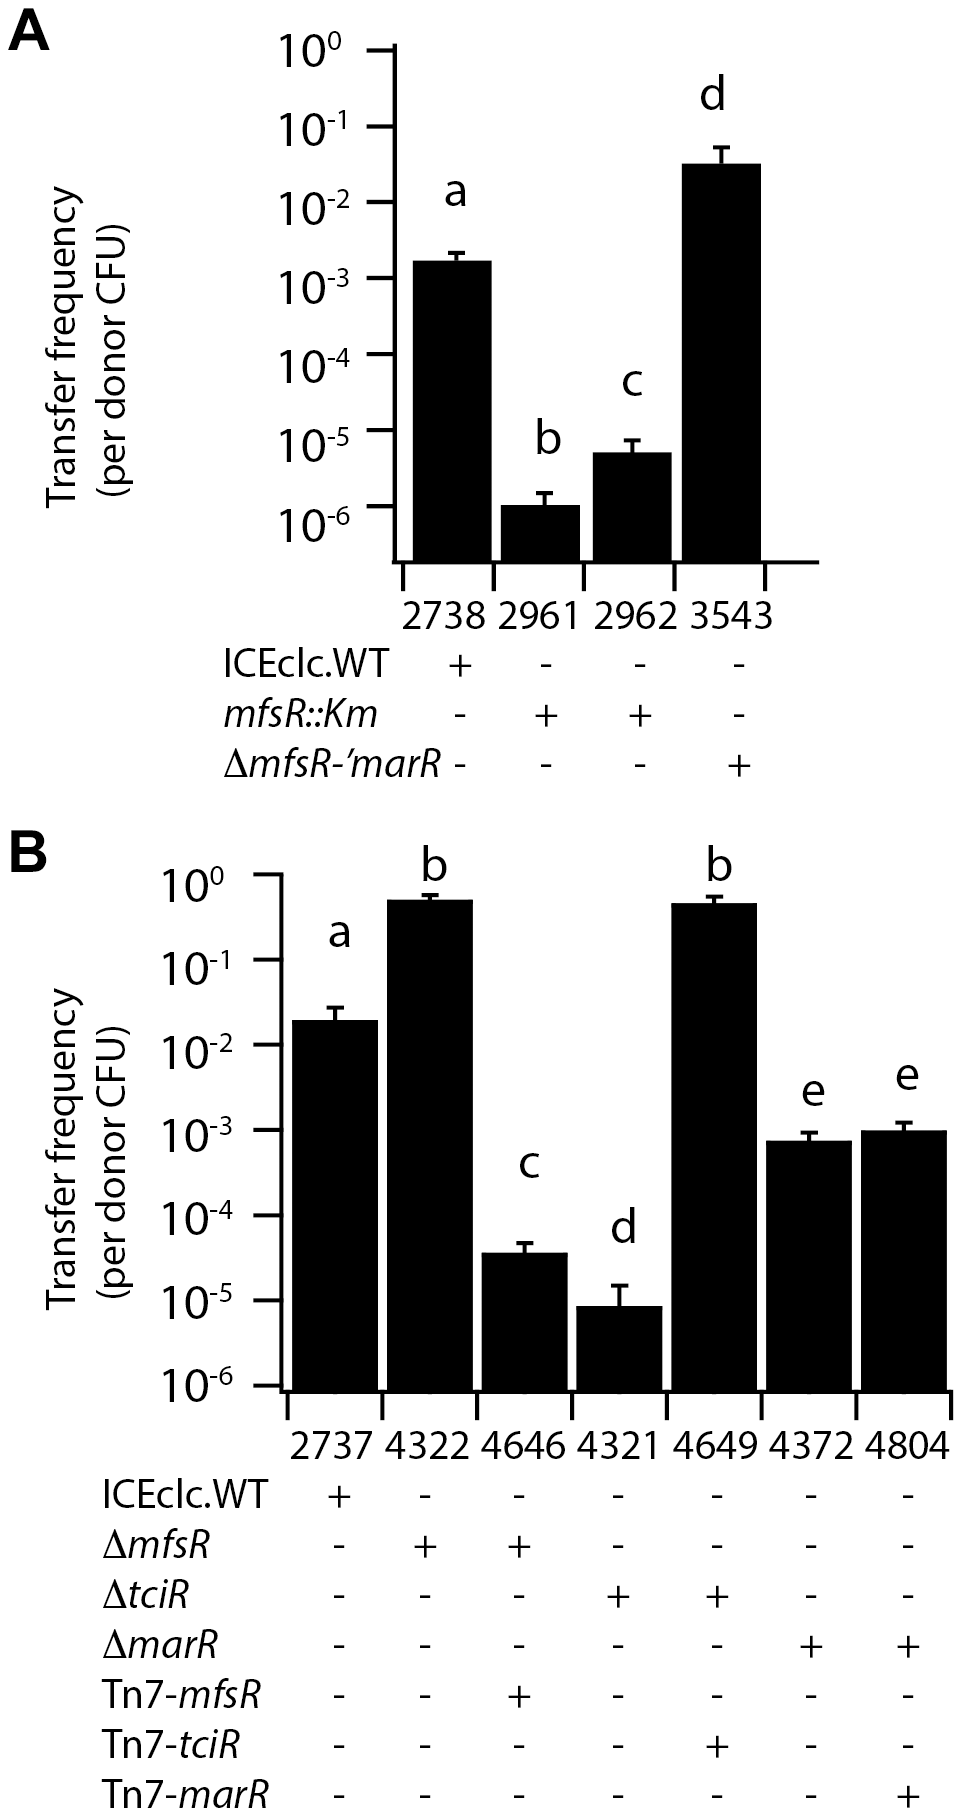 ICE<i>clc</i> transfer frequencies from <i>P. putida</i> UWC1 donors with different ICE<i>clc</i> genotypes.